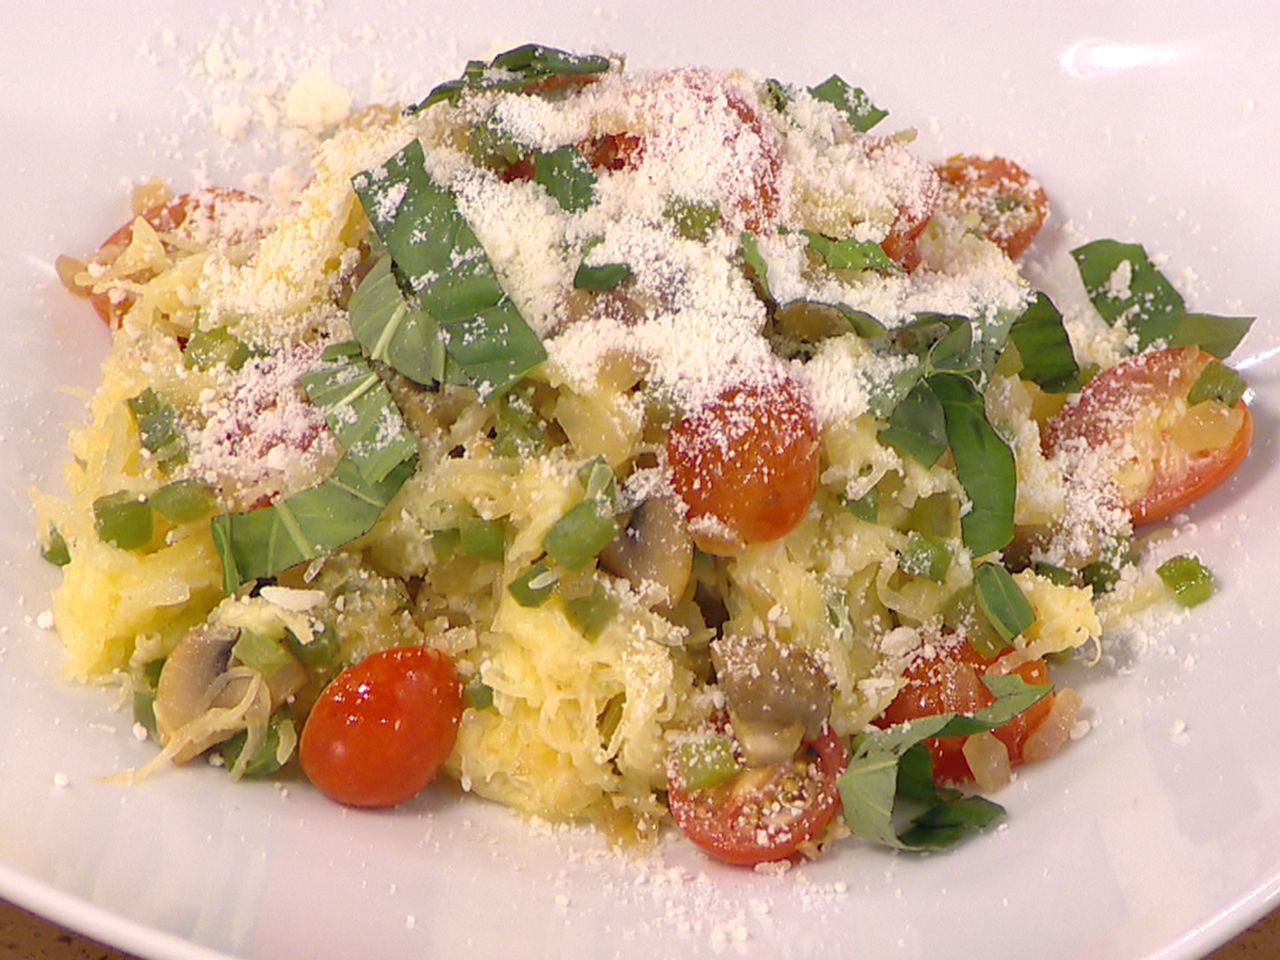 Try this 160-calorie spaghetti squash primavera from TODAY's Home Chef Challenge winner!